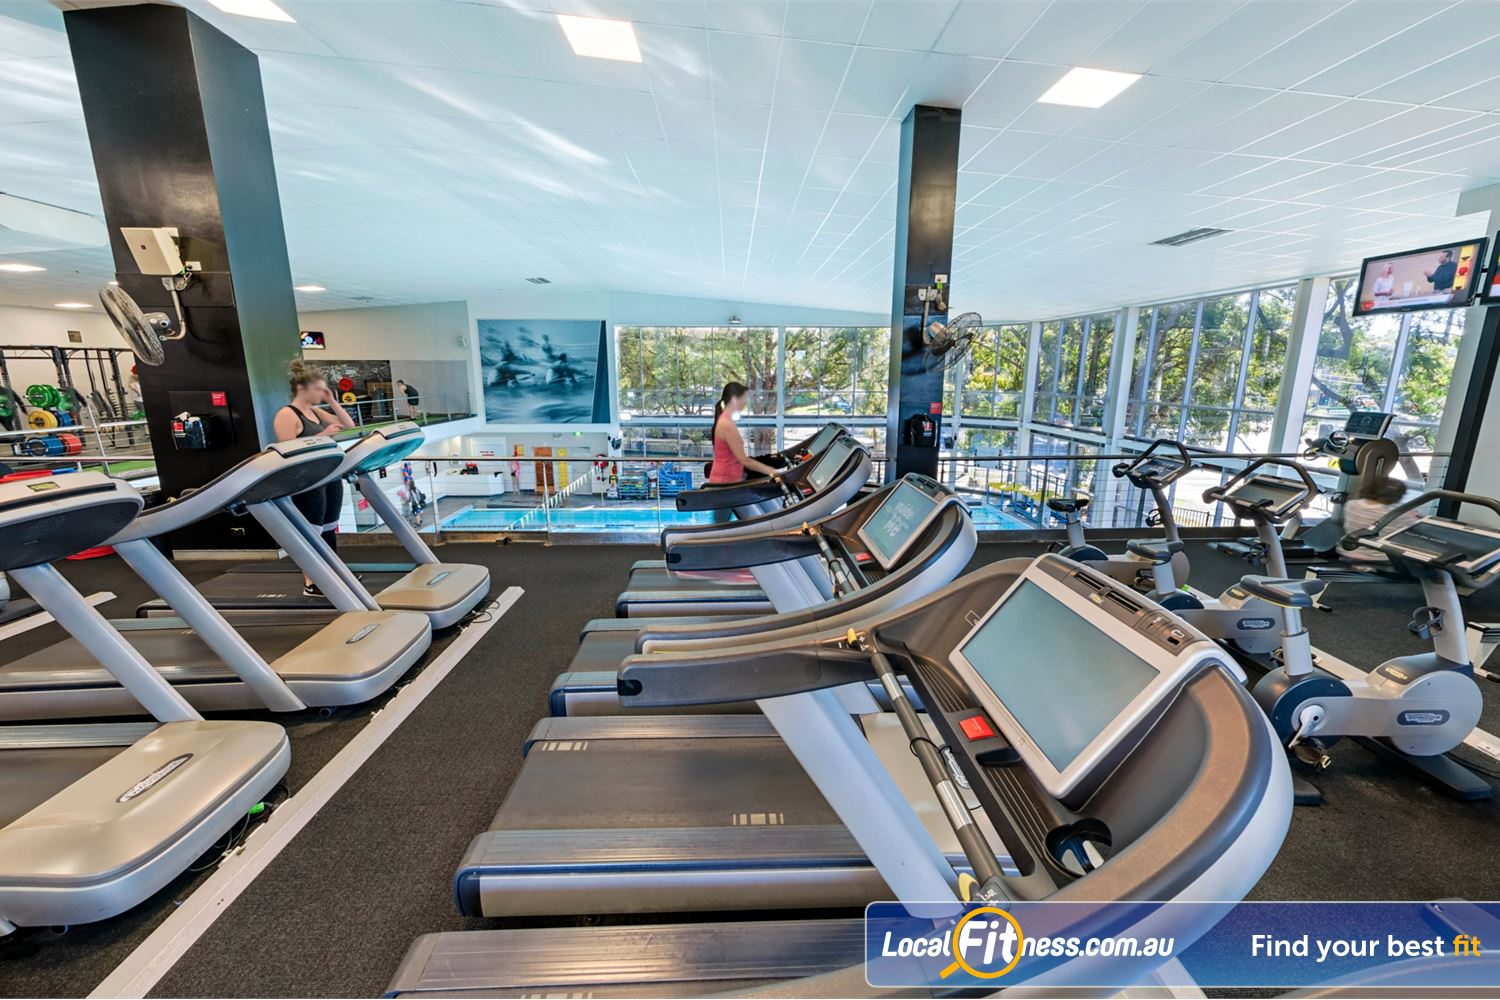 Fitness First Near Kareela Relaxing views of our swimming pool from our cardio area.